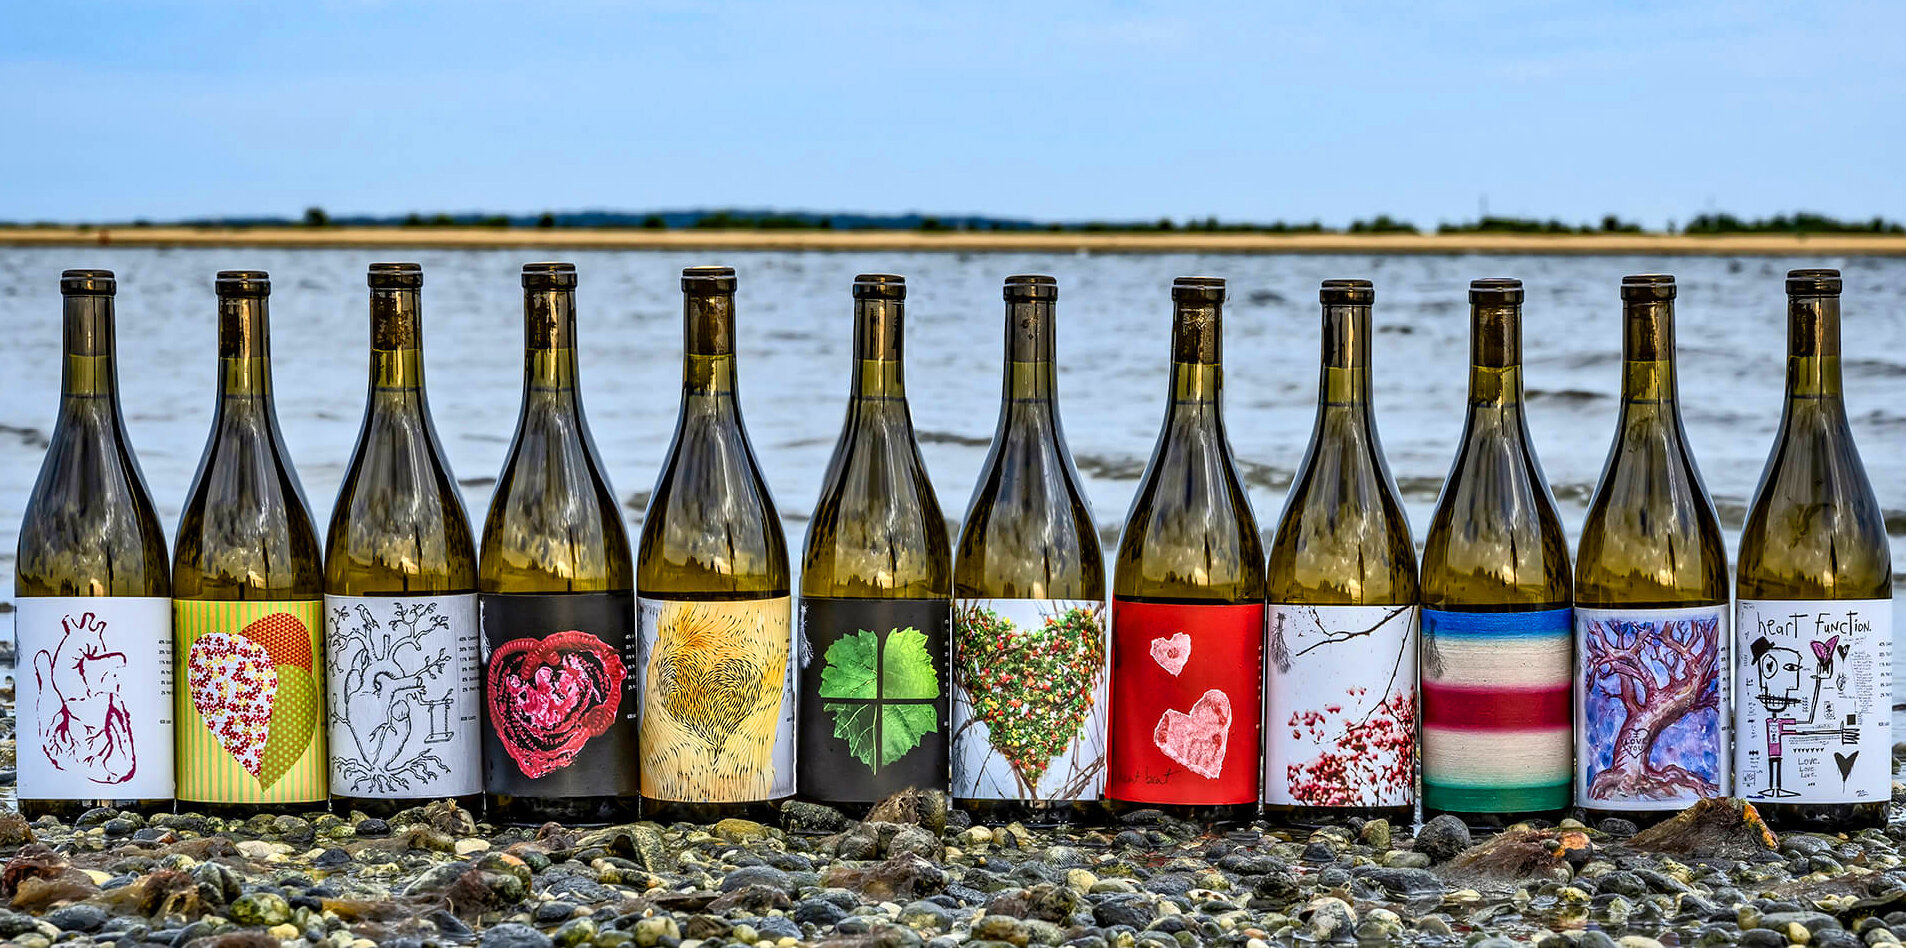 2019 Heart Artists Series wine bottles lined up on the beach